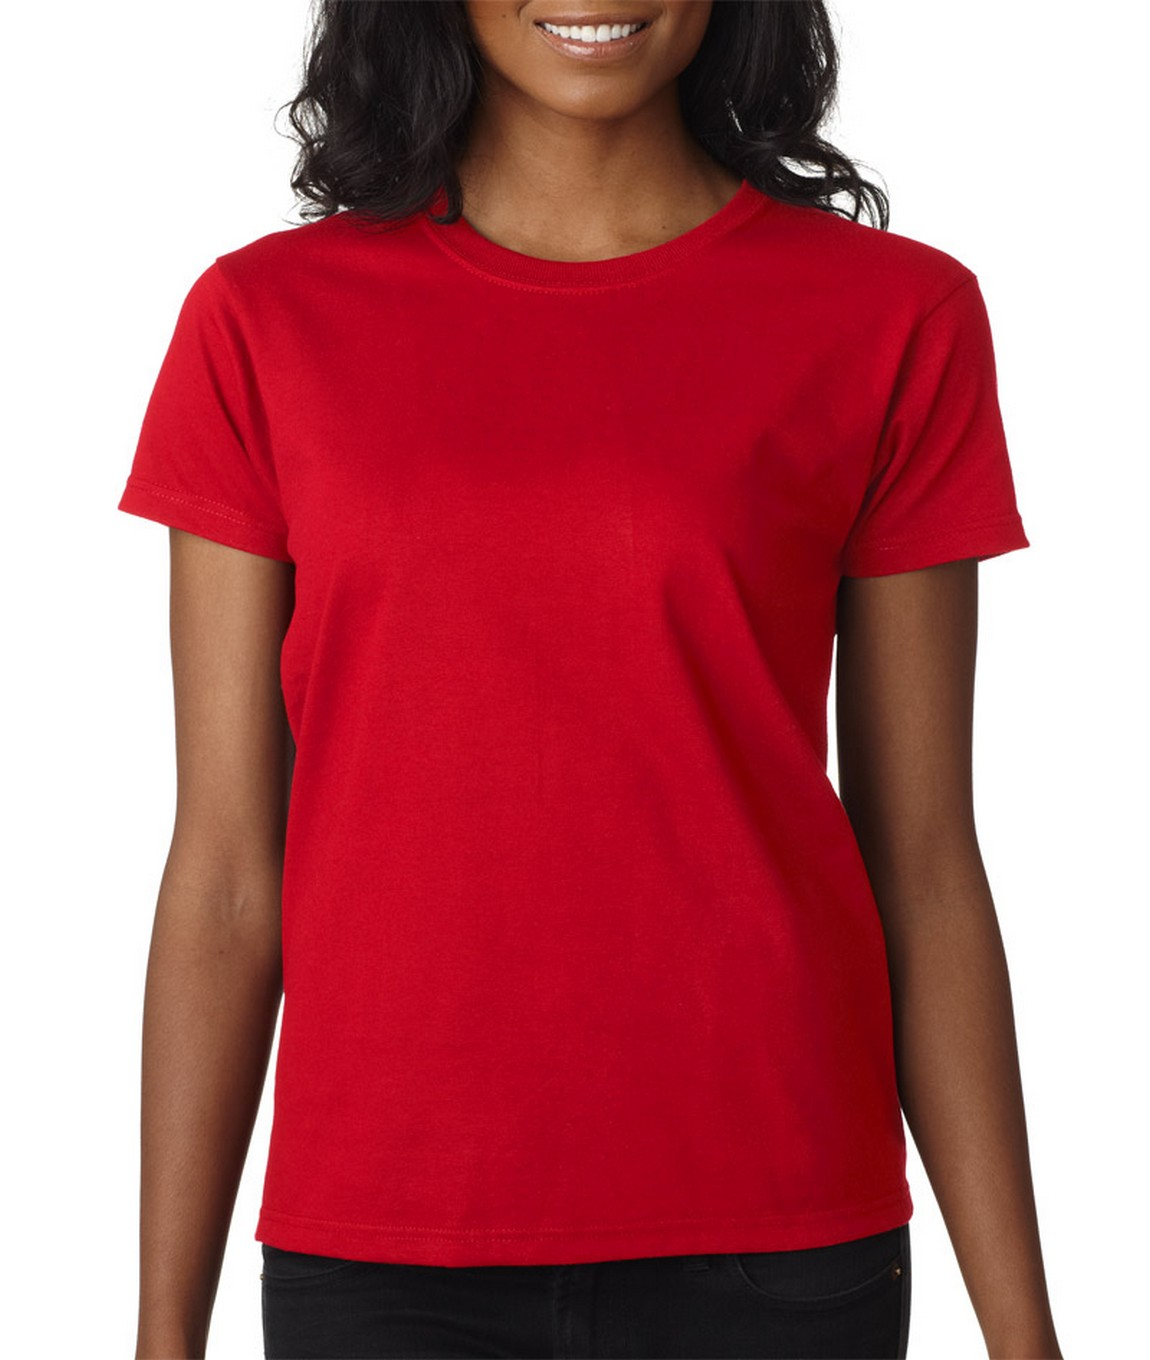 blank womens red tshirt rnk shops